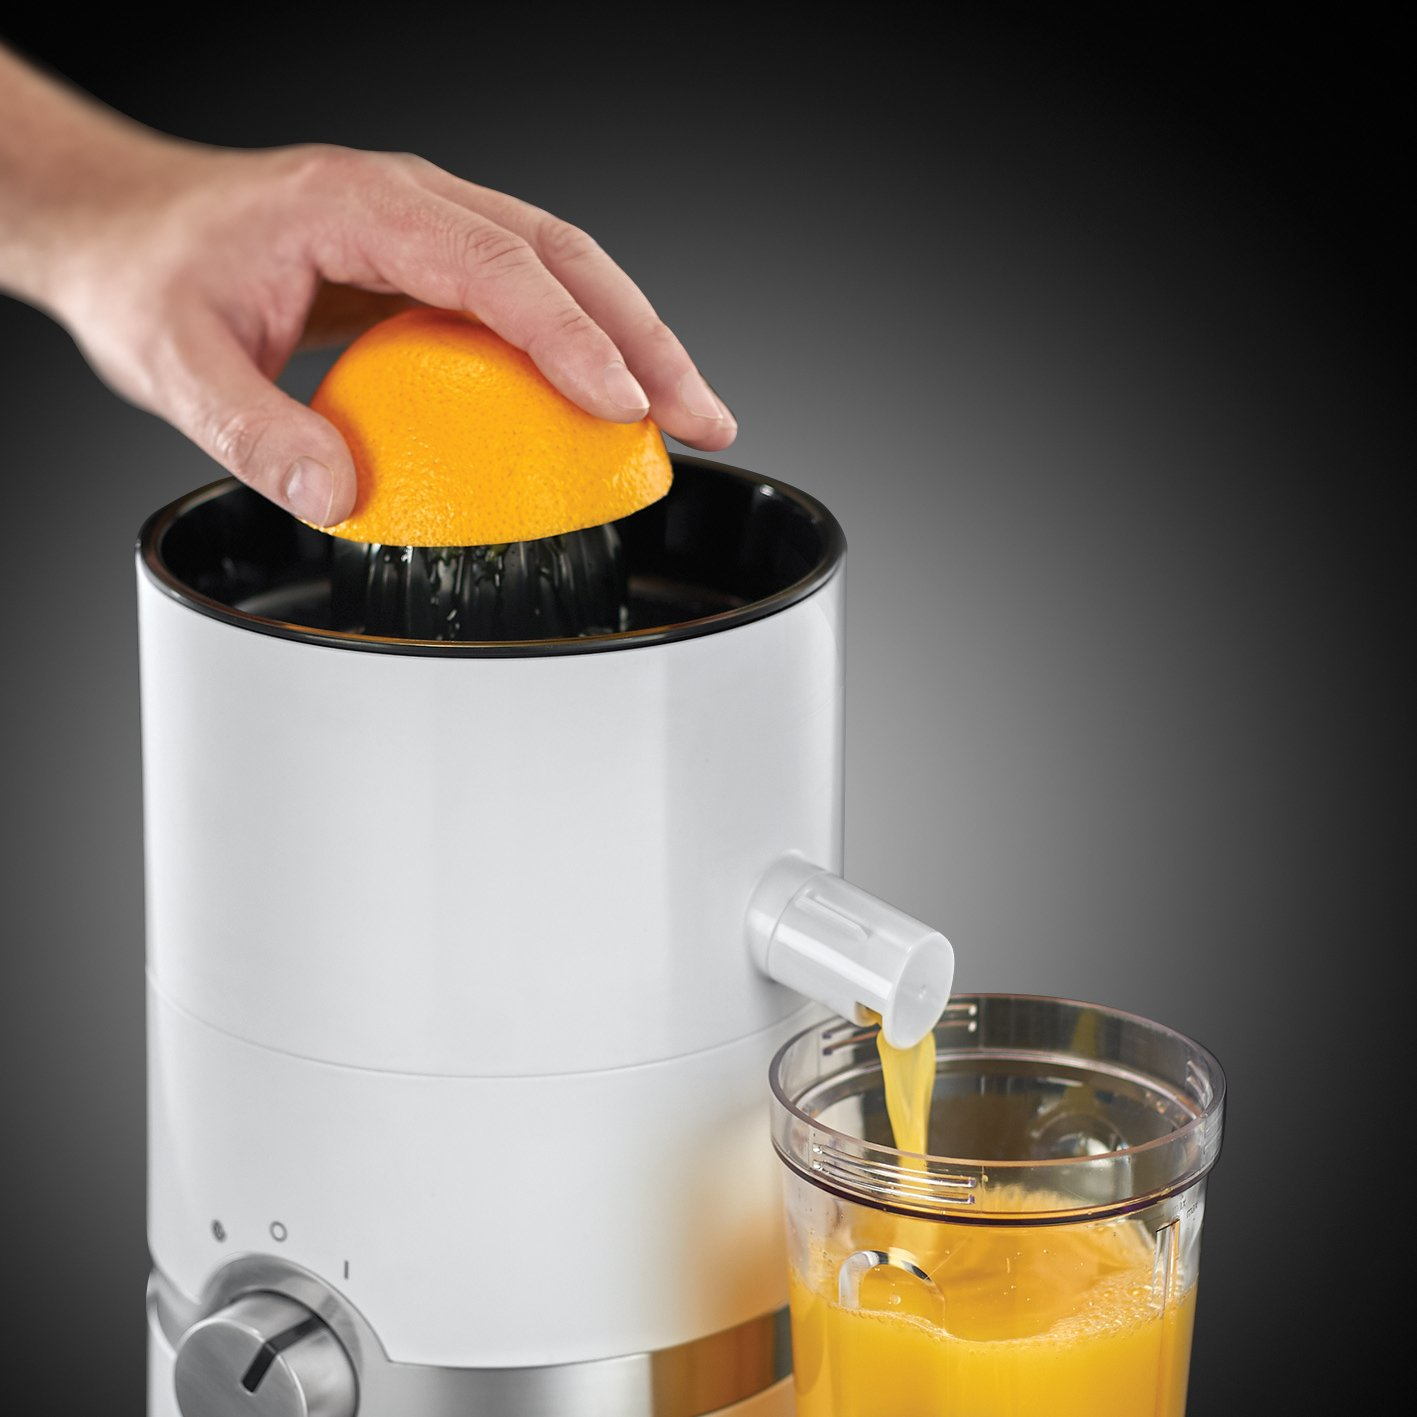 Russell Hobbs 3-in-1 Juicer, Press and Blender 2